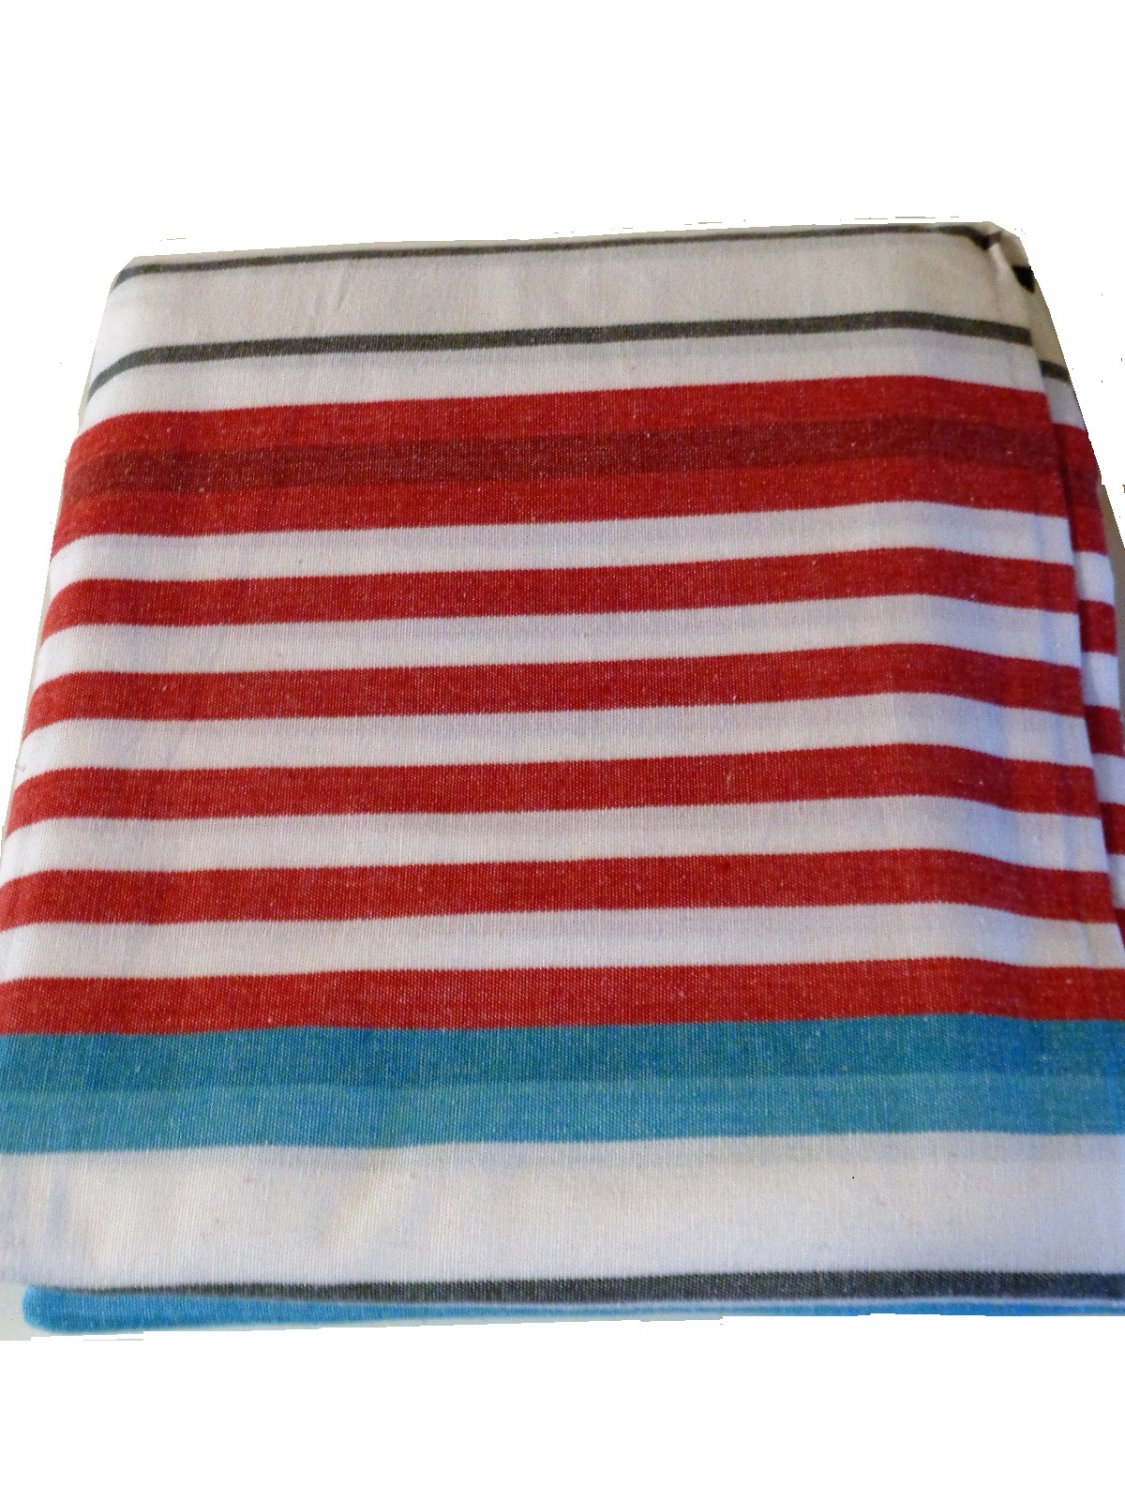 Nautical Beacon Stripes Fabric Shower Curtain Beach Decor